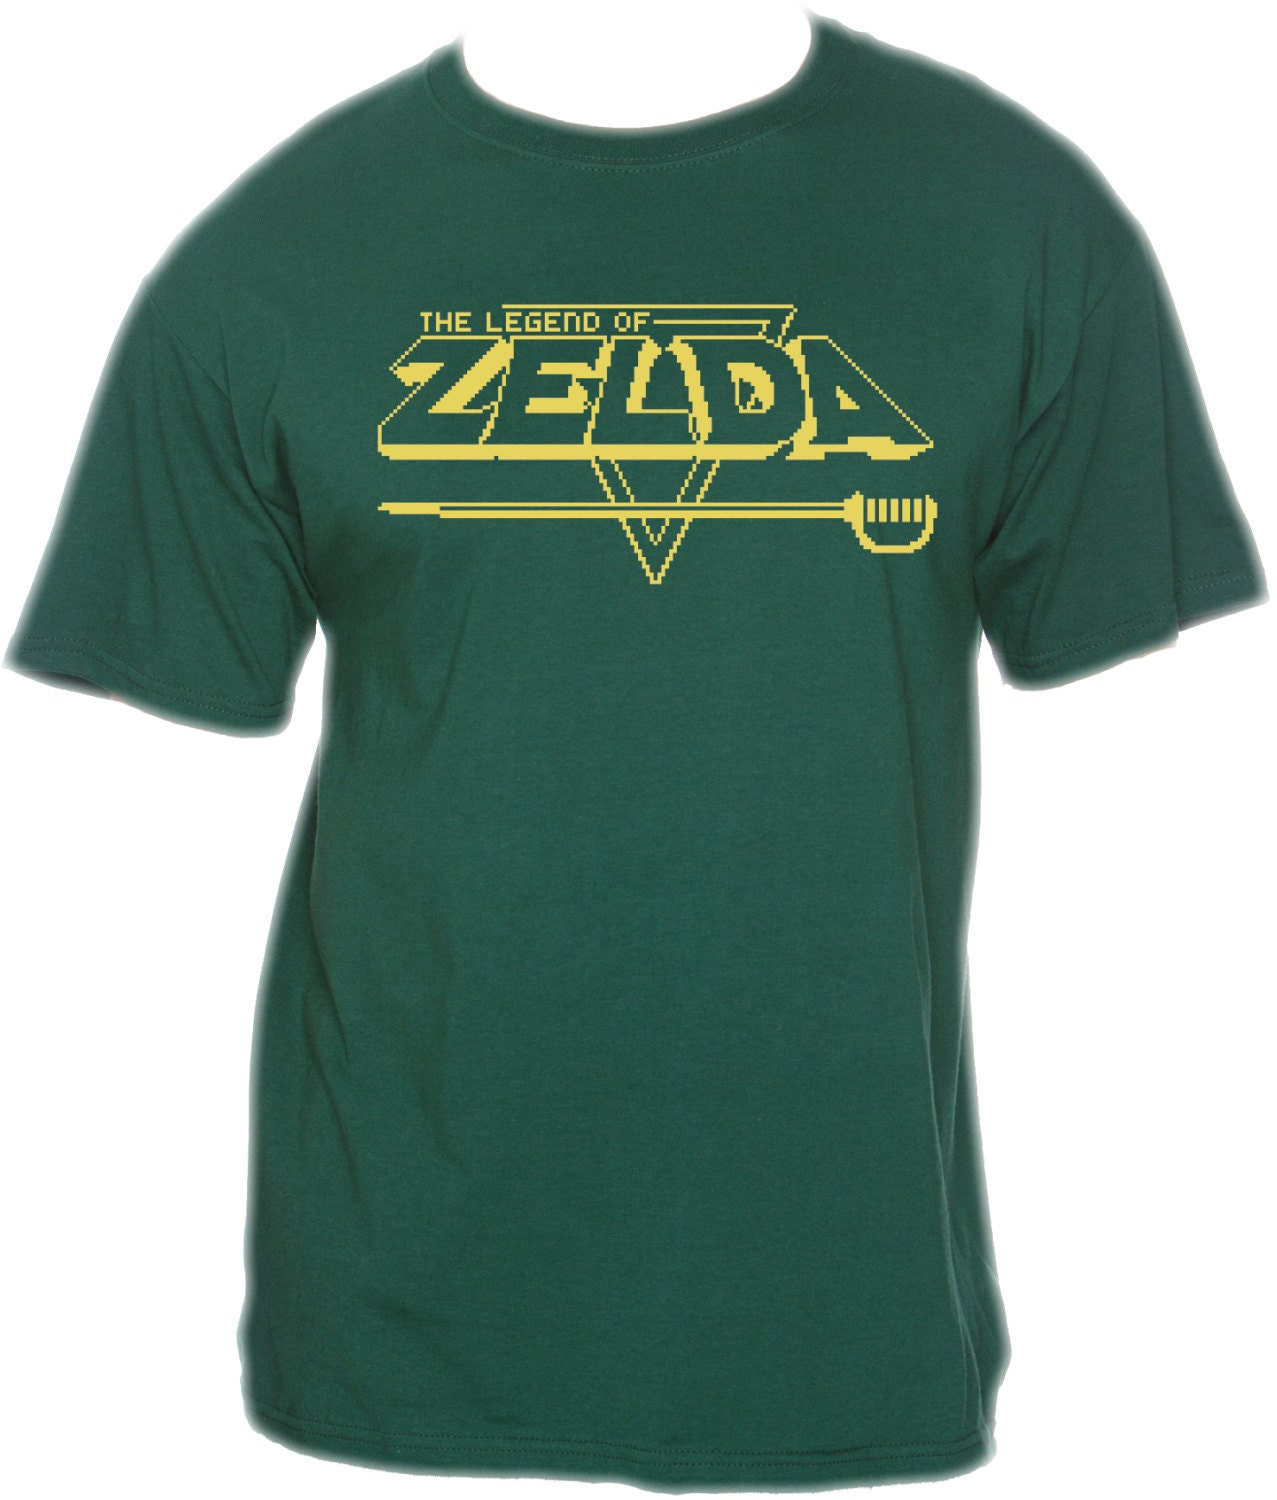 Retro Legend Of Zelda T Shirt By Superbitkicks On Etsy